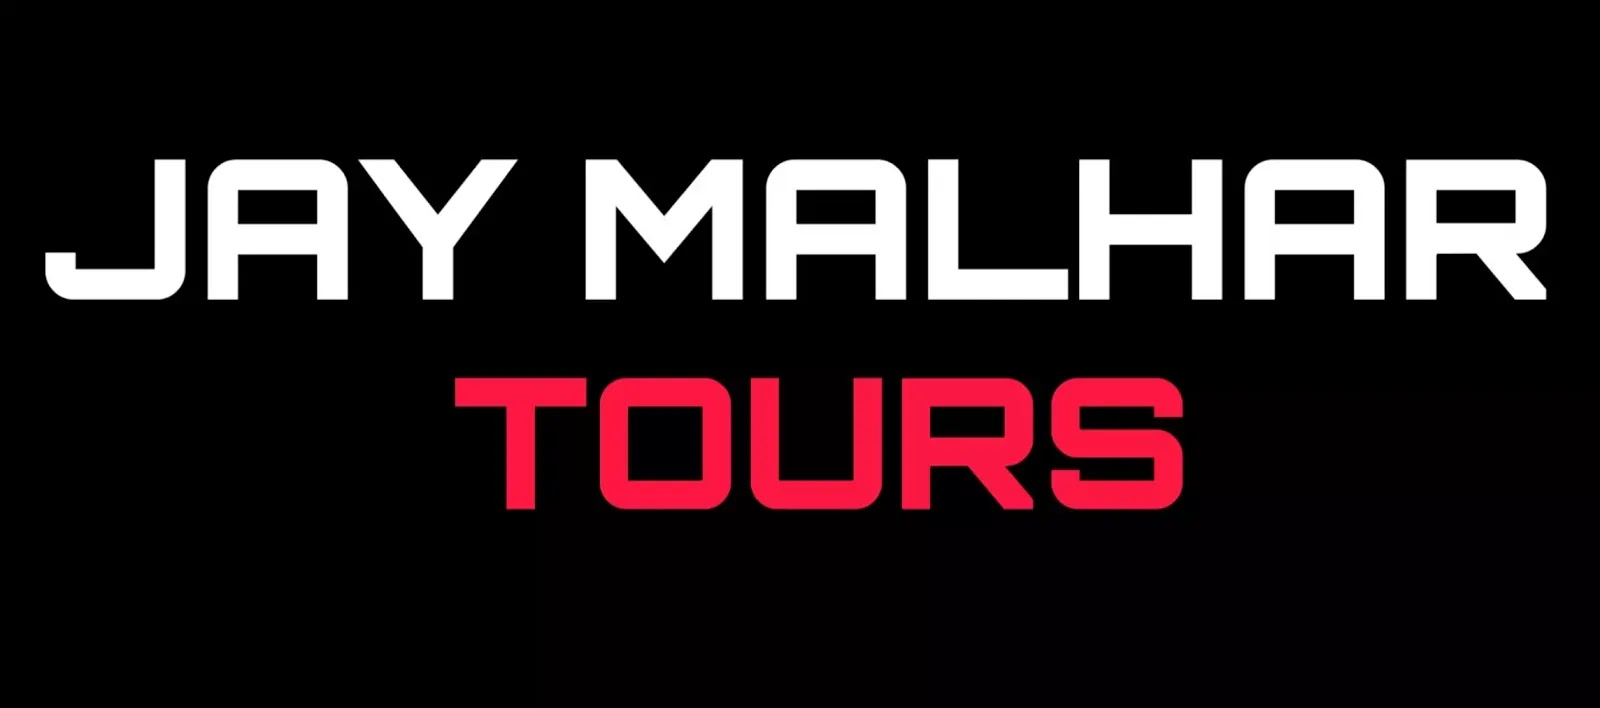 Jay malhar tours and  management Amravati India